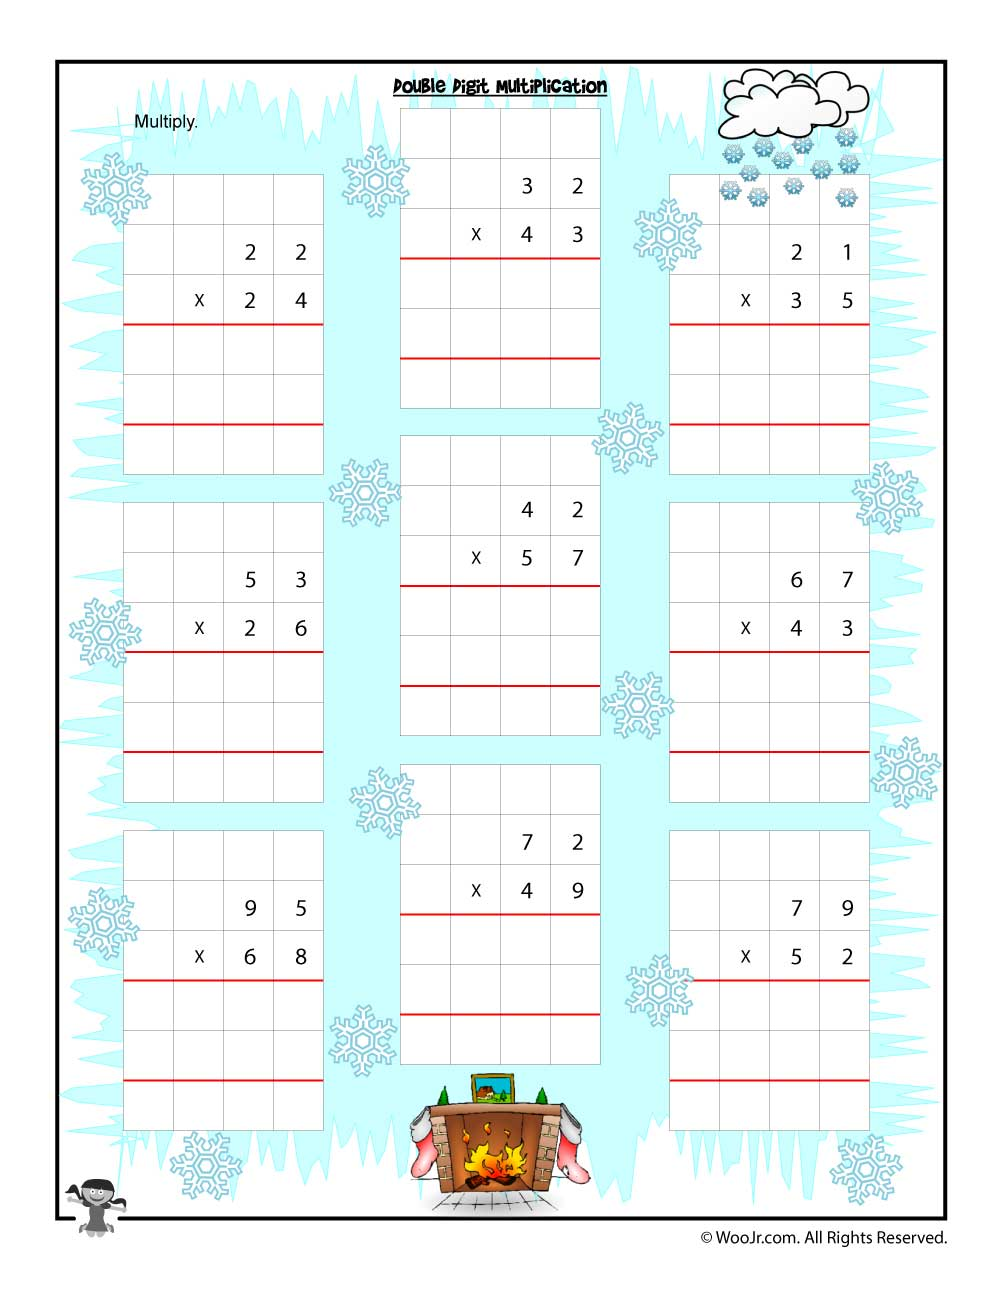 Workbooks math for 4th graders worksheets : Christmas & Winter Math Worksheets for 2nd, 3rd and 4th Graders ...